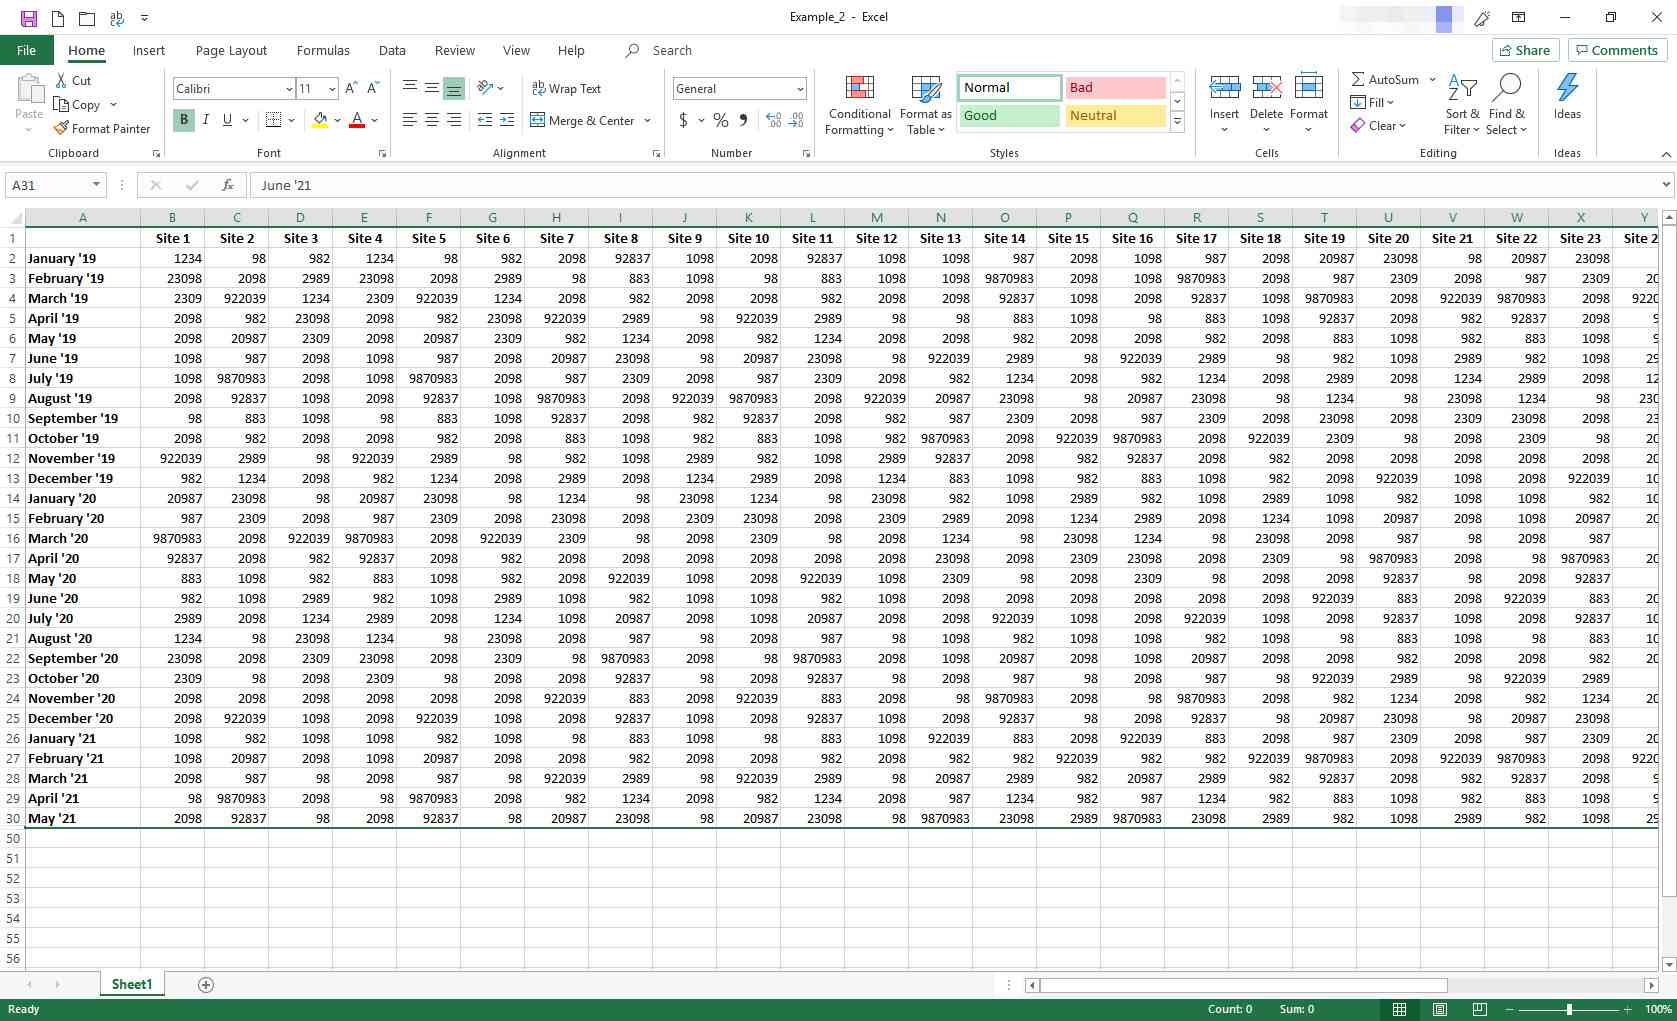 Excel worksheet with limited rows displayed